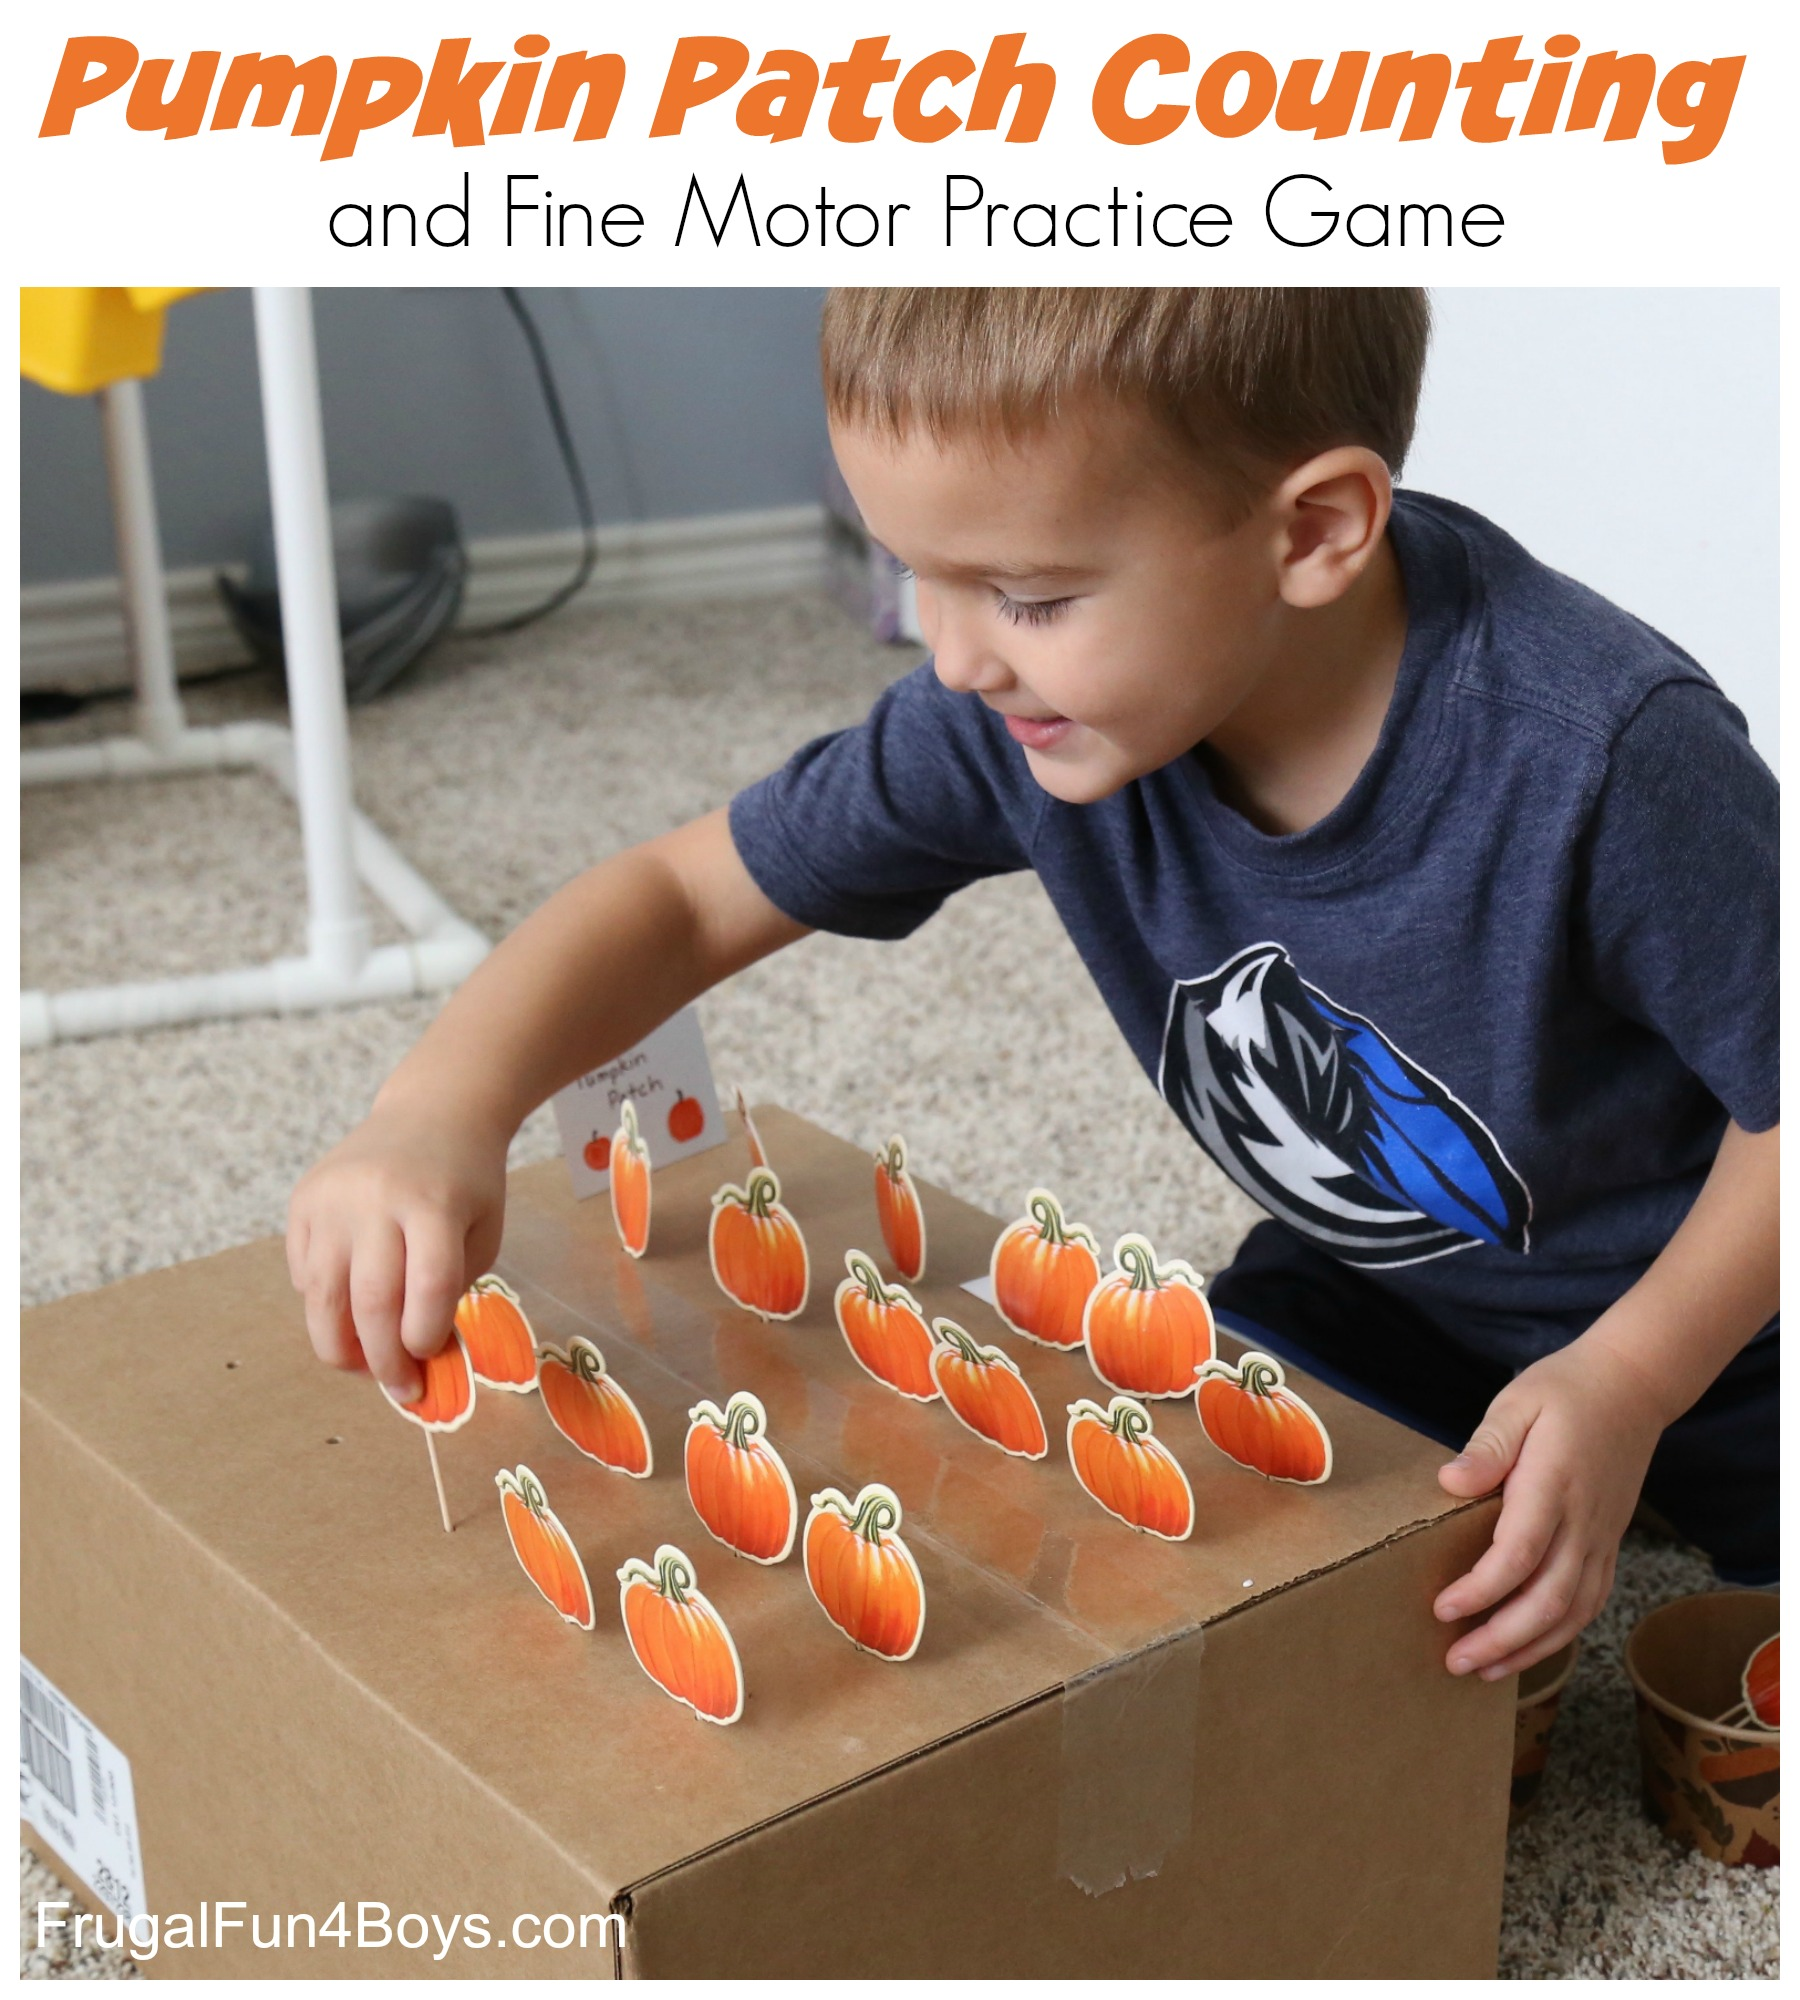 Pumpkin Patch Counting & Fine Motor Practice Game